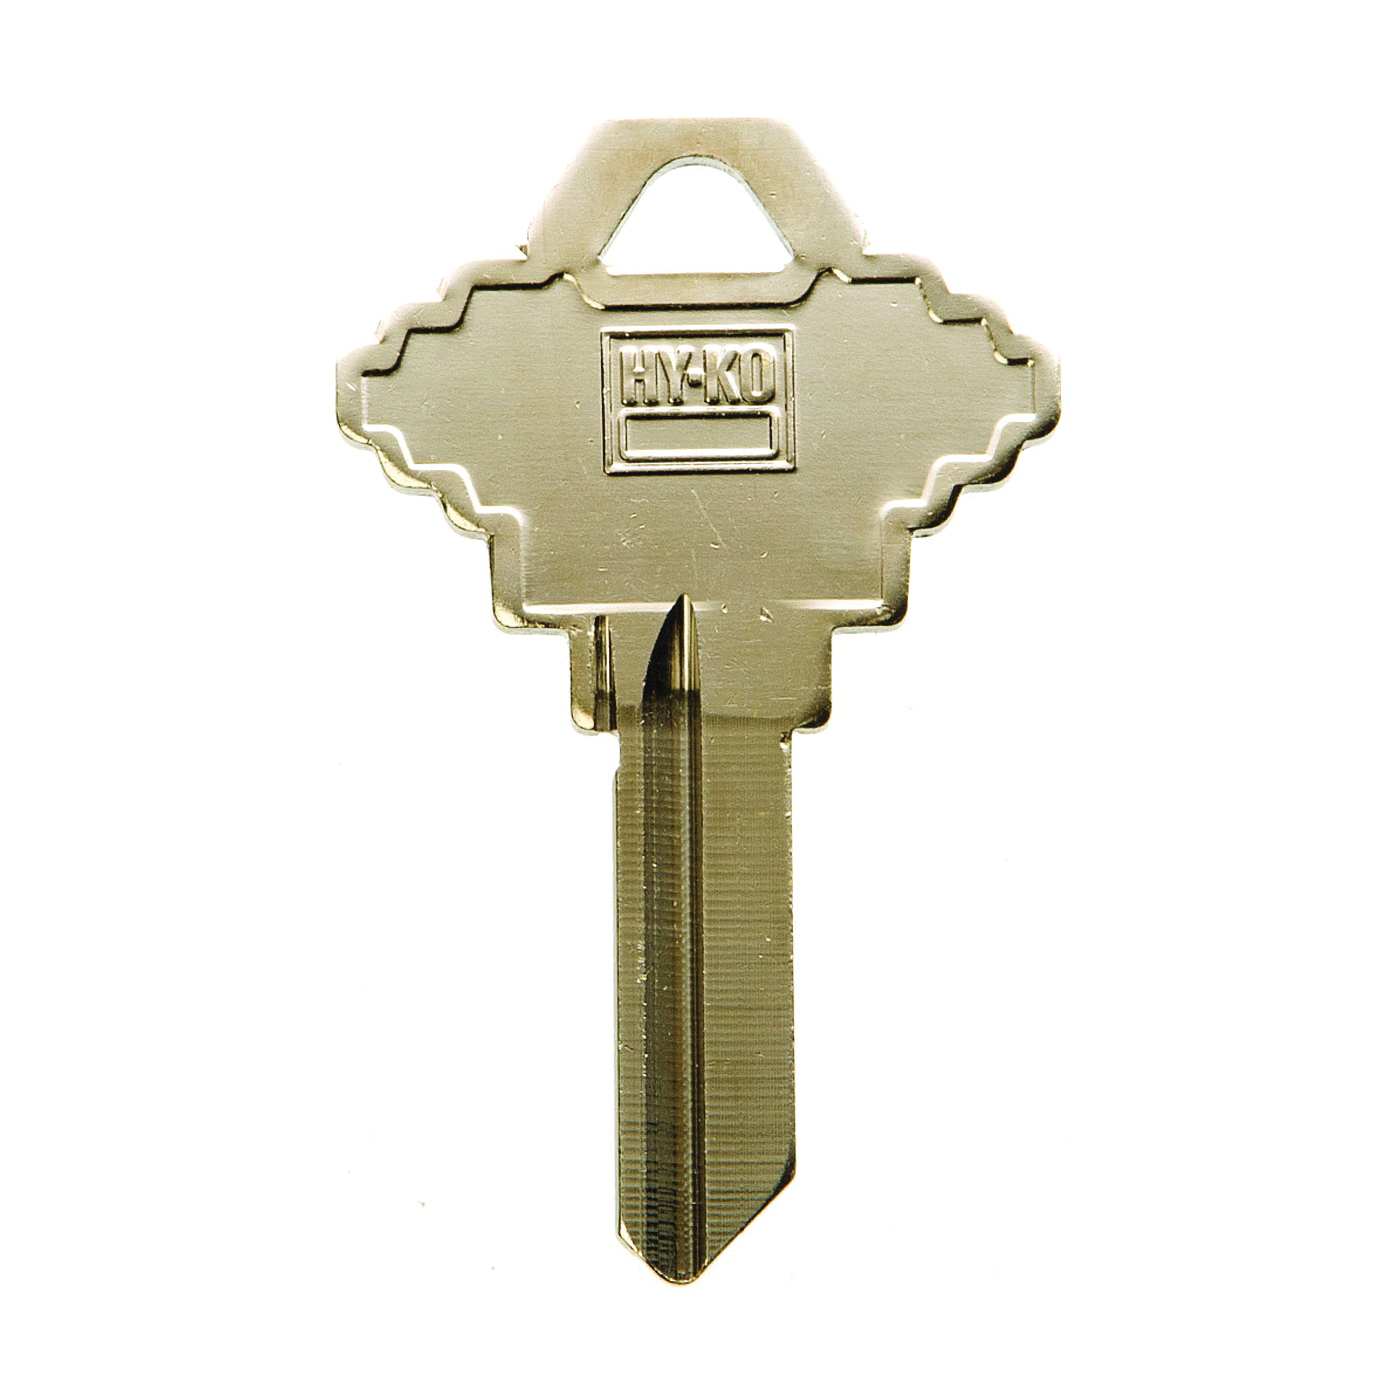 Picture of HY-KO 11005SC1XL Key Blank with XL Head, Brass, Nickel, For: Schlage Cabinet, House Locks and Padlocks